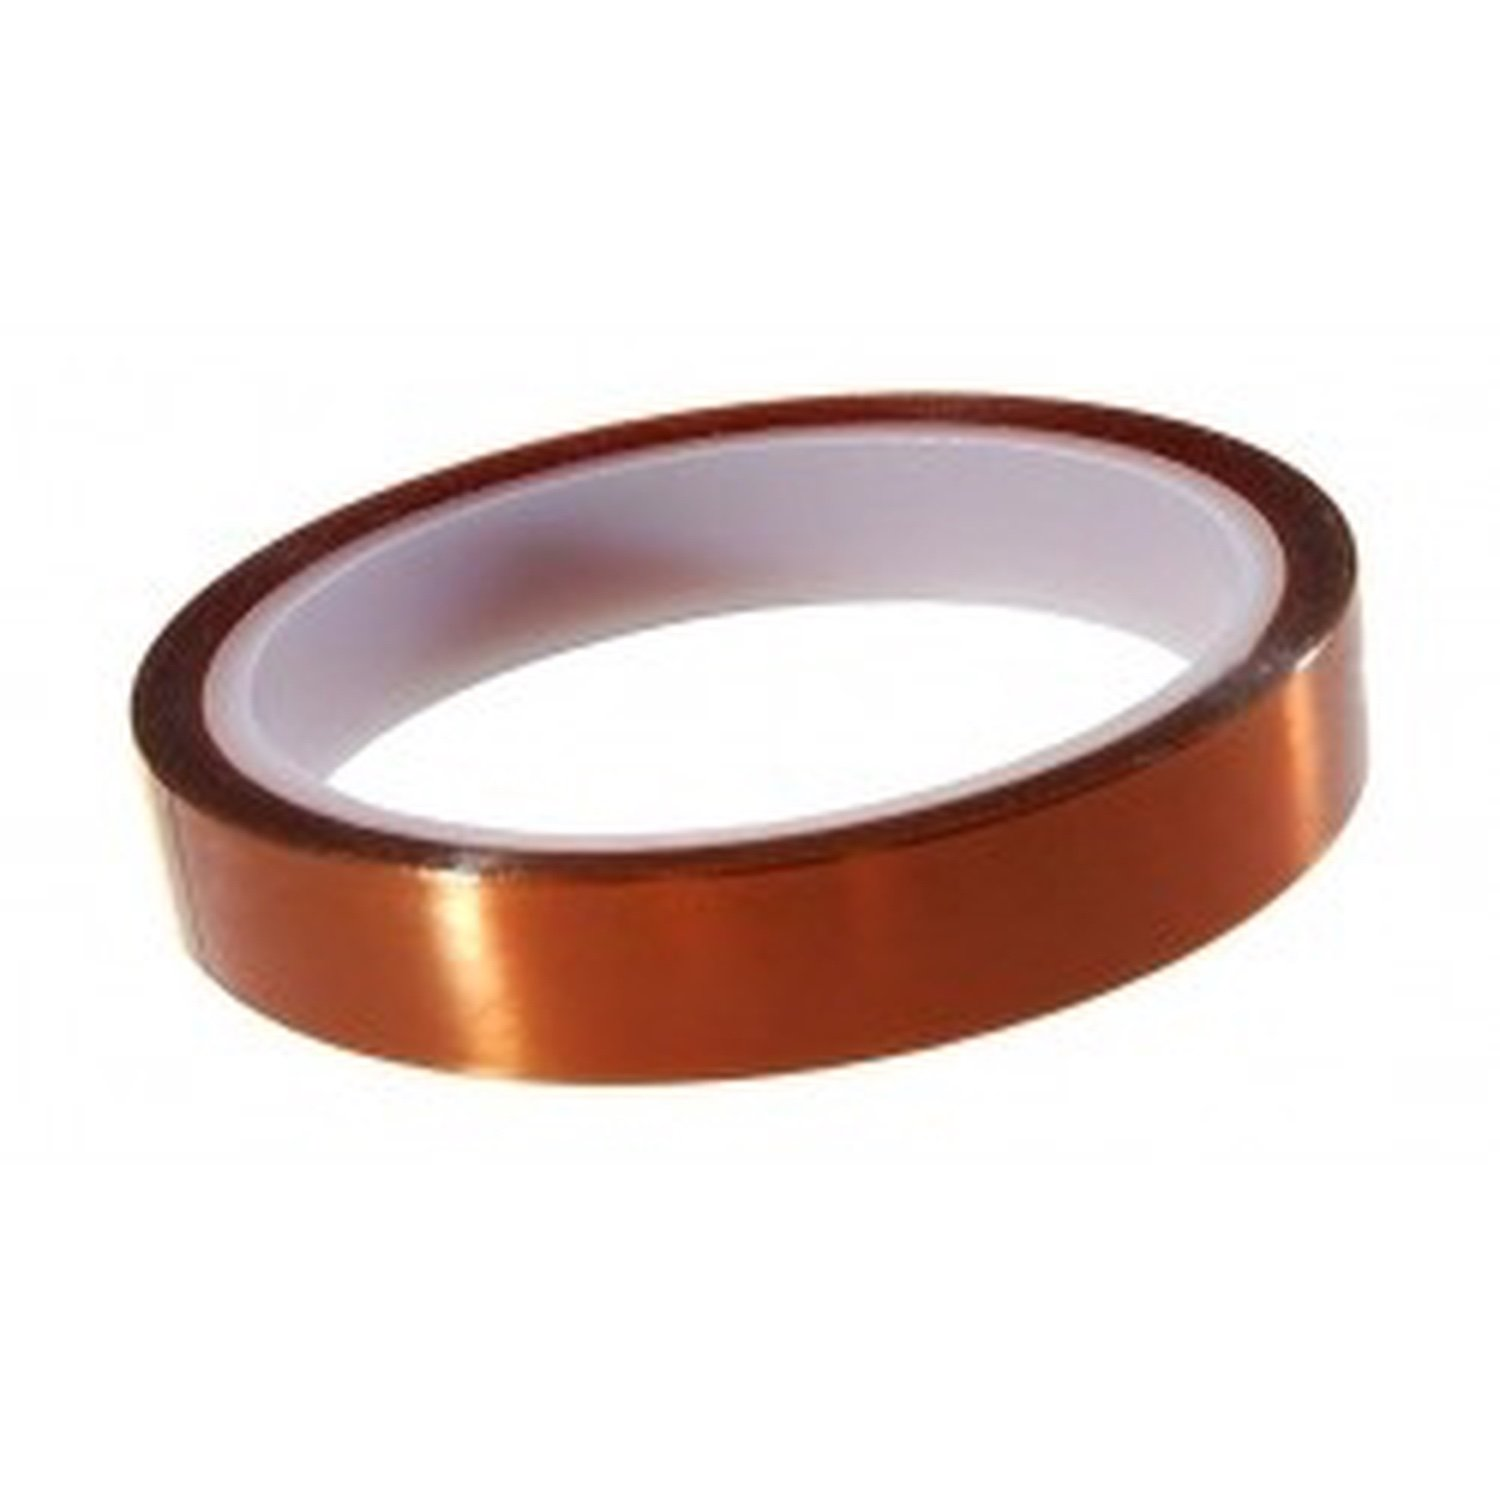 Adhesive Tape Kapton 20mm (resistant Heat)